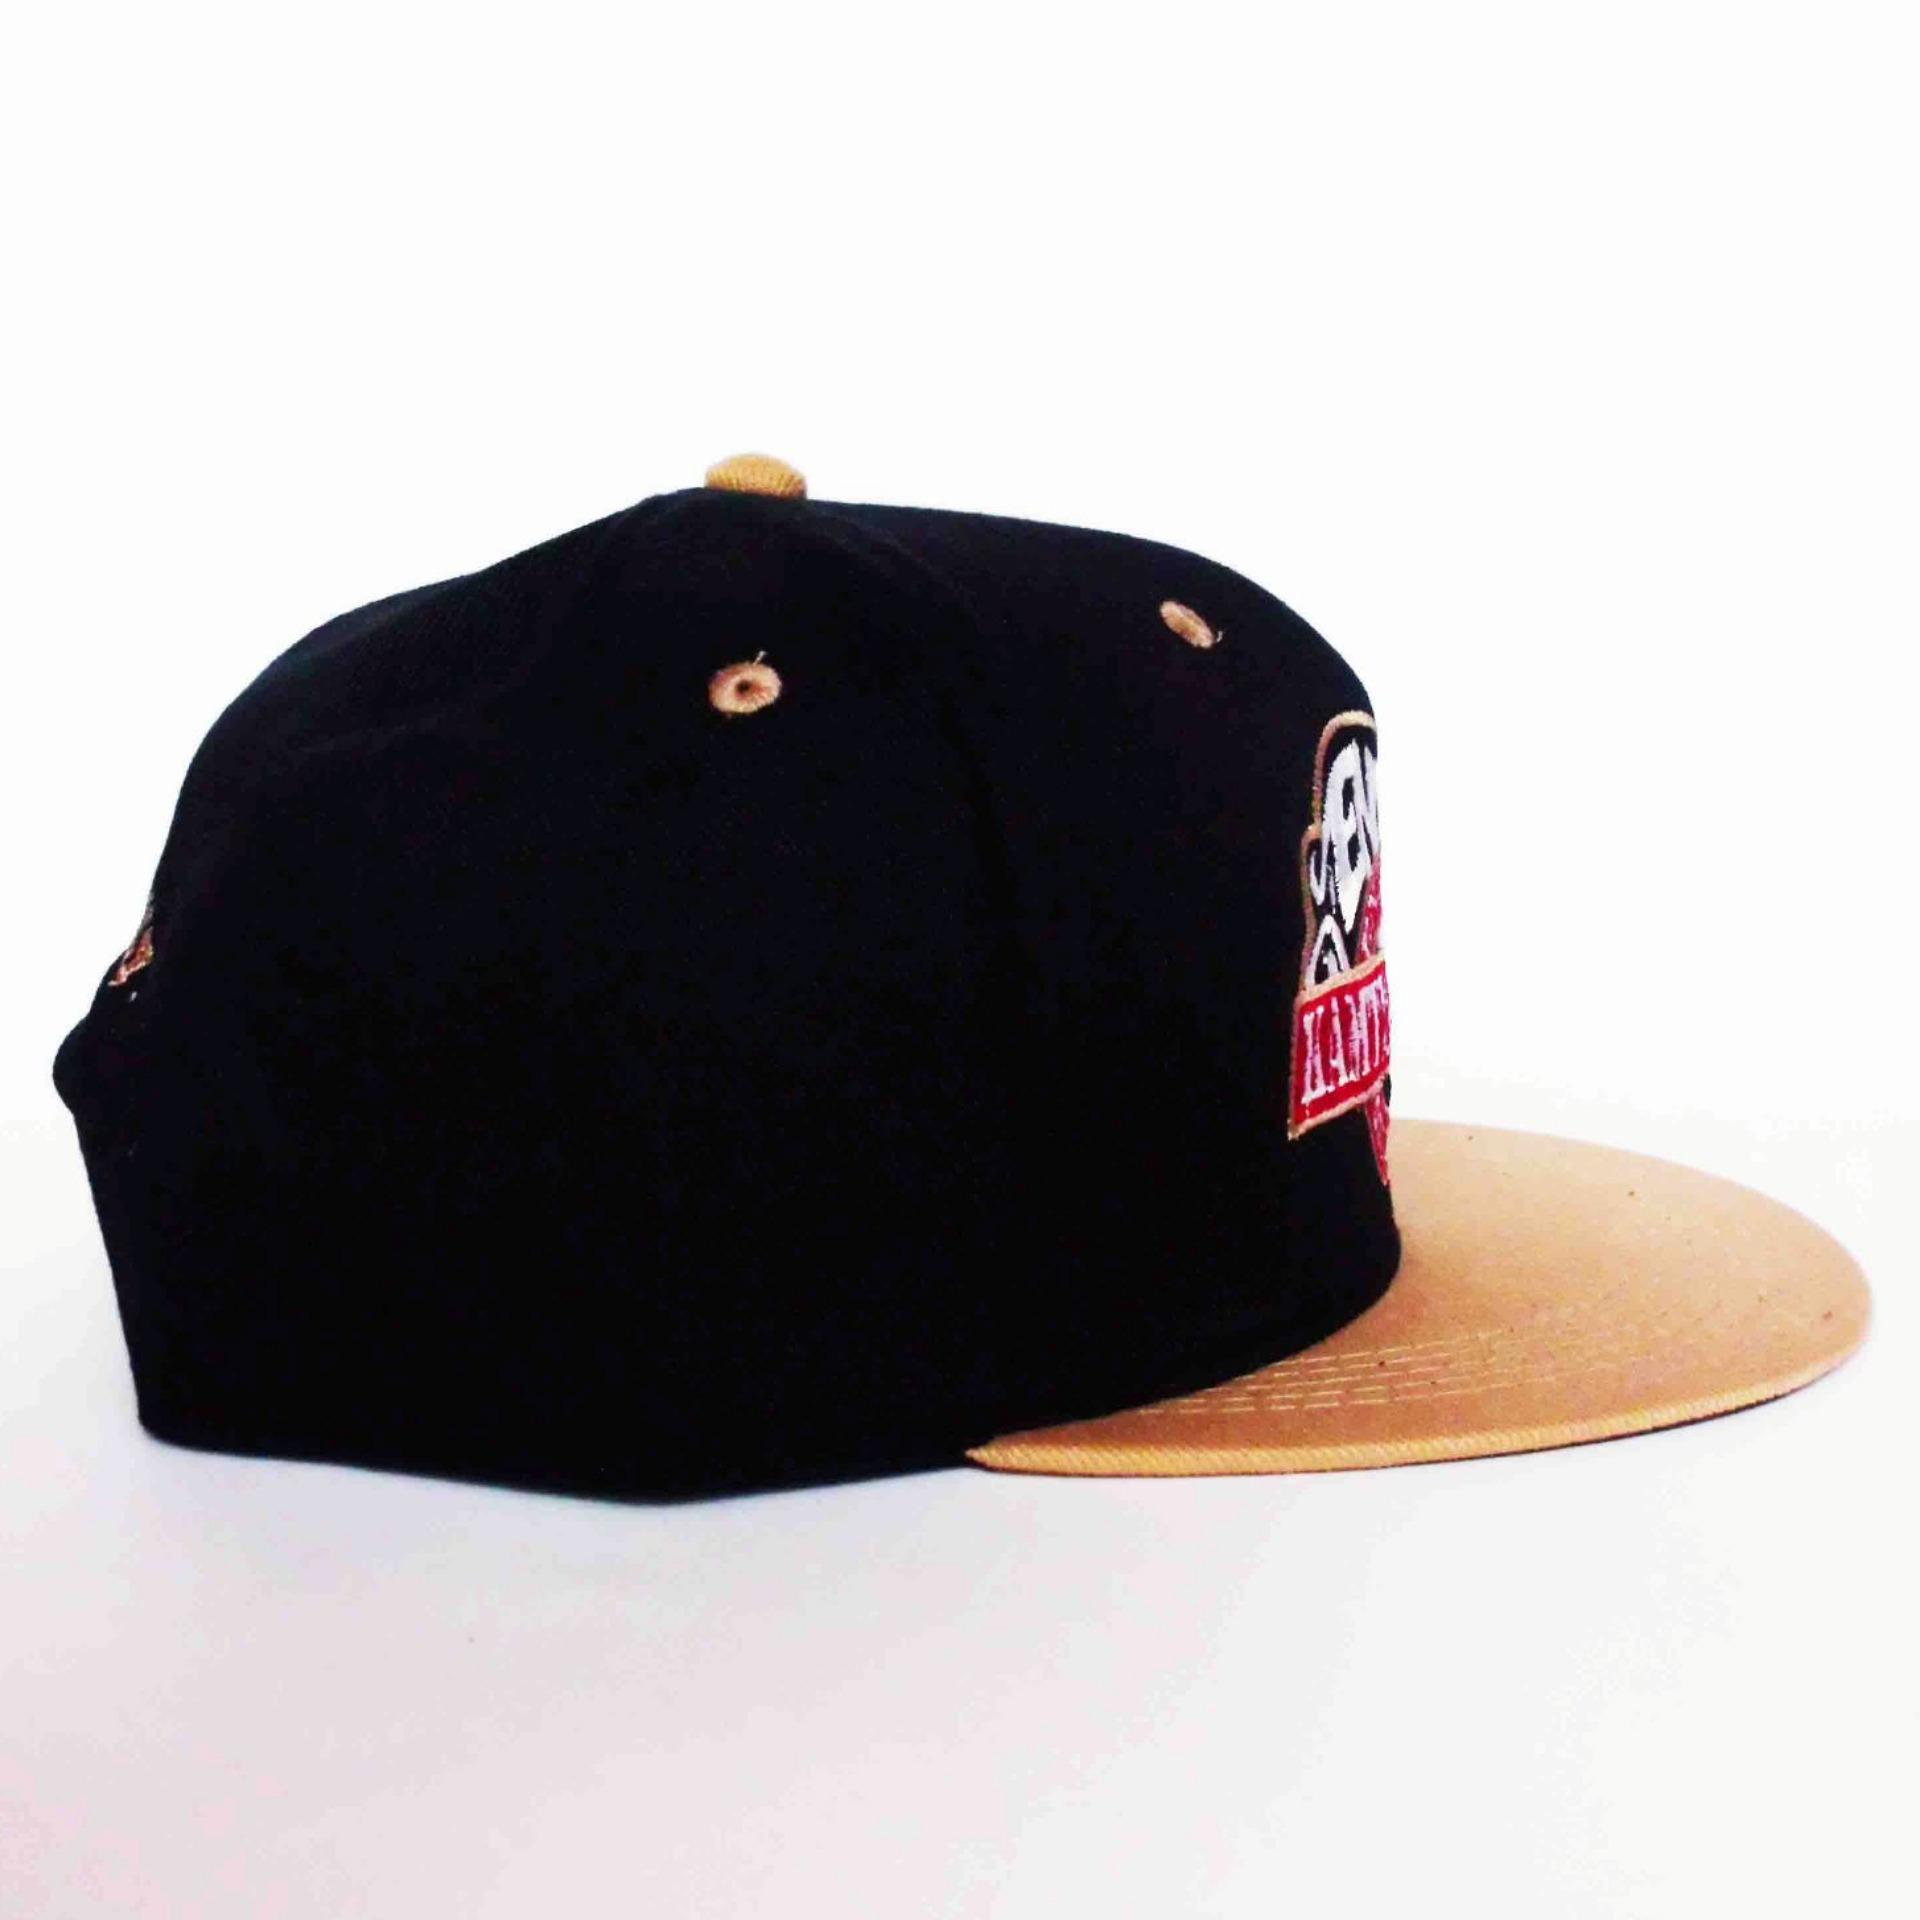 Topi Snapback Distro Hv8065 Best Buy Indonesia Pria Hrcn H 8007 Endank Soek Brown Cap